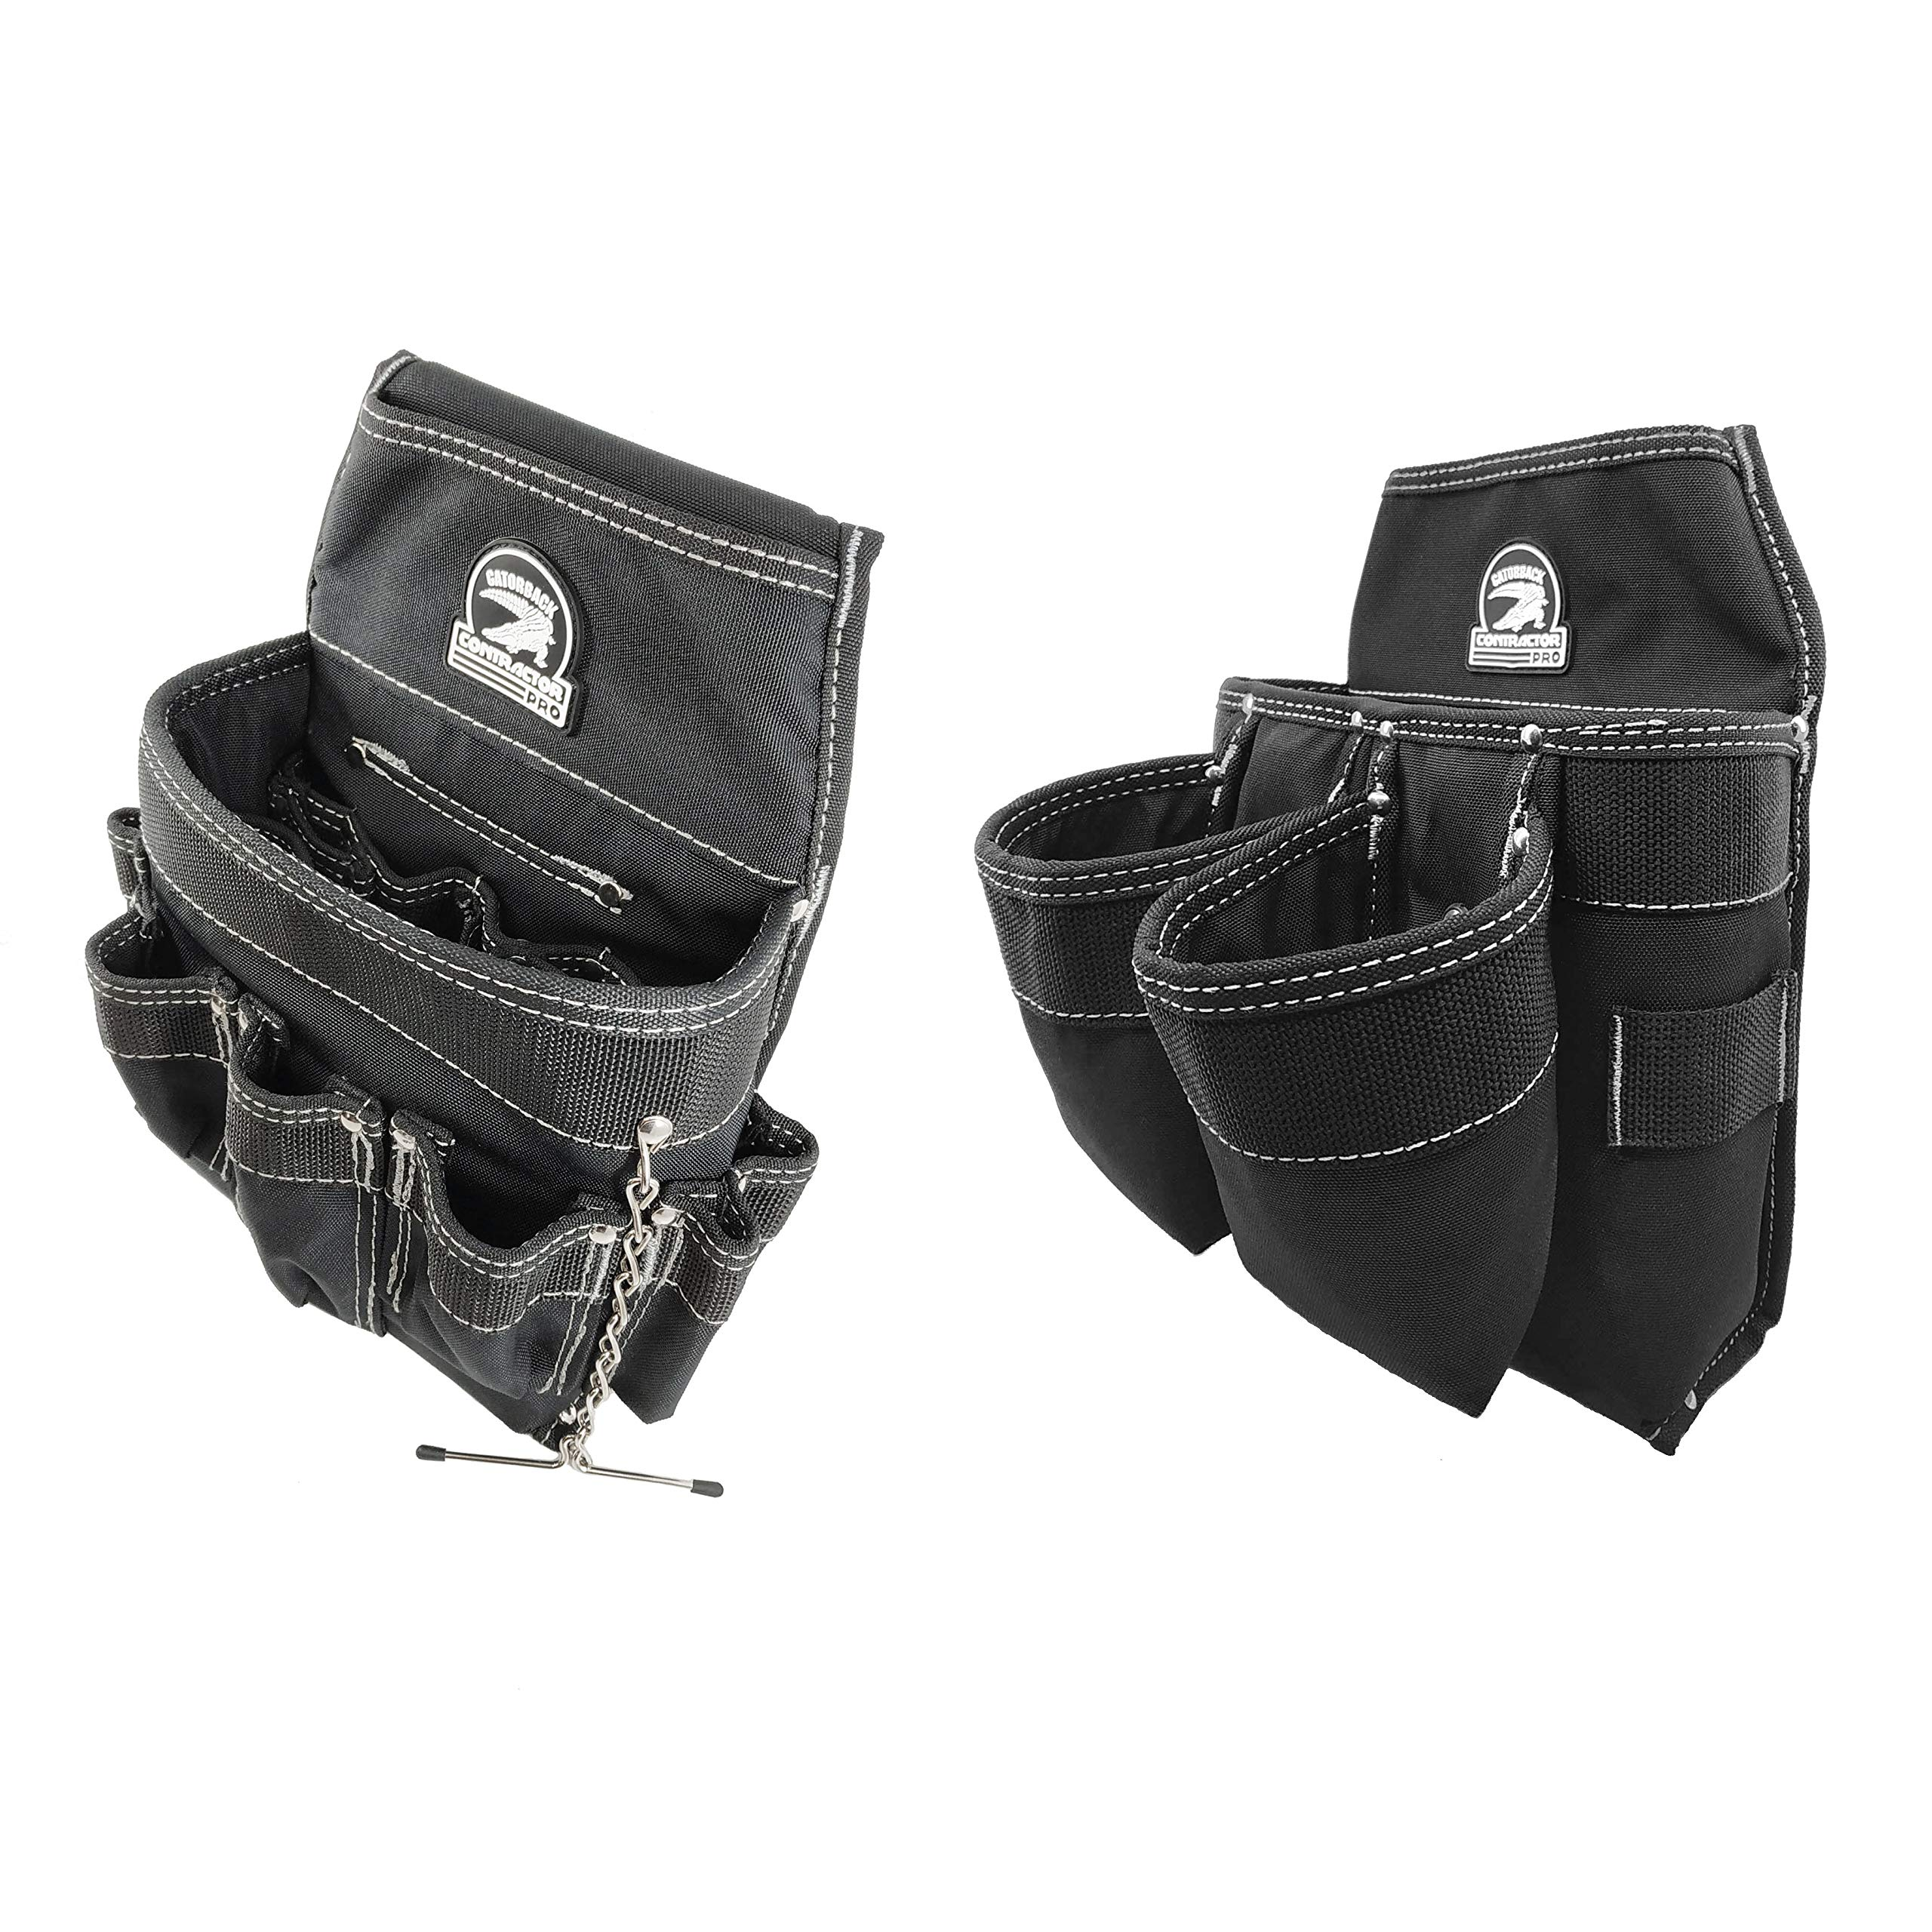 Professional Electrian's Tool and Fastener Pouch Set (tool belt ready) by Gatorback